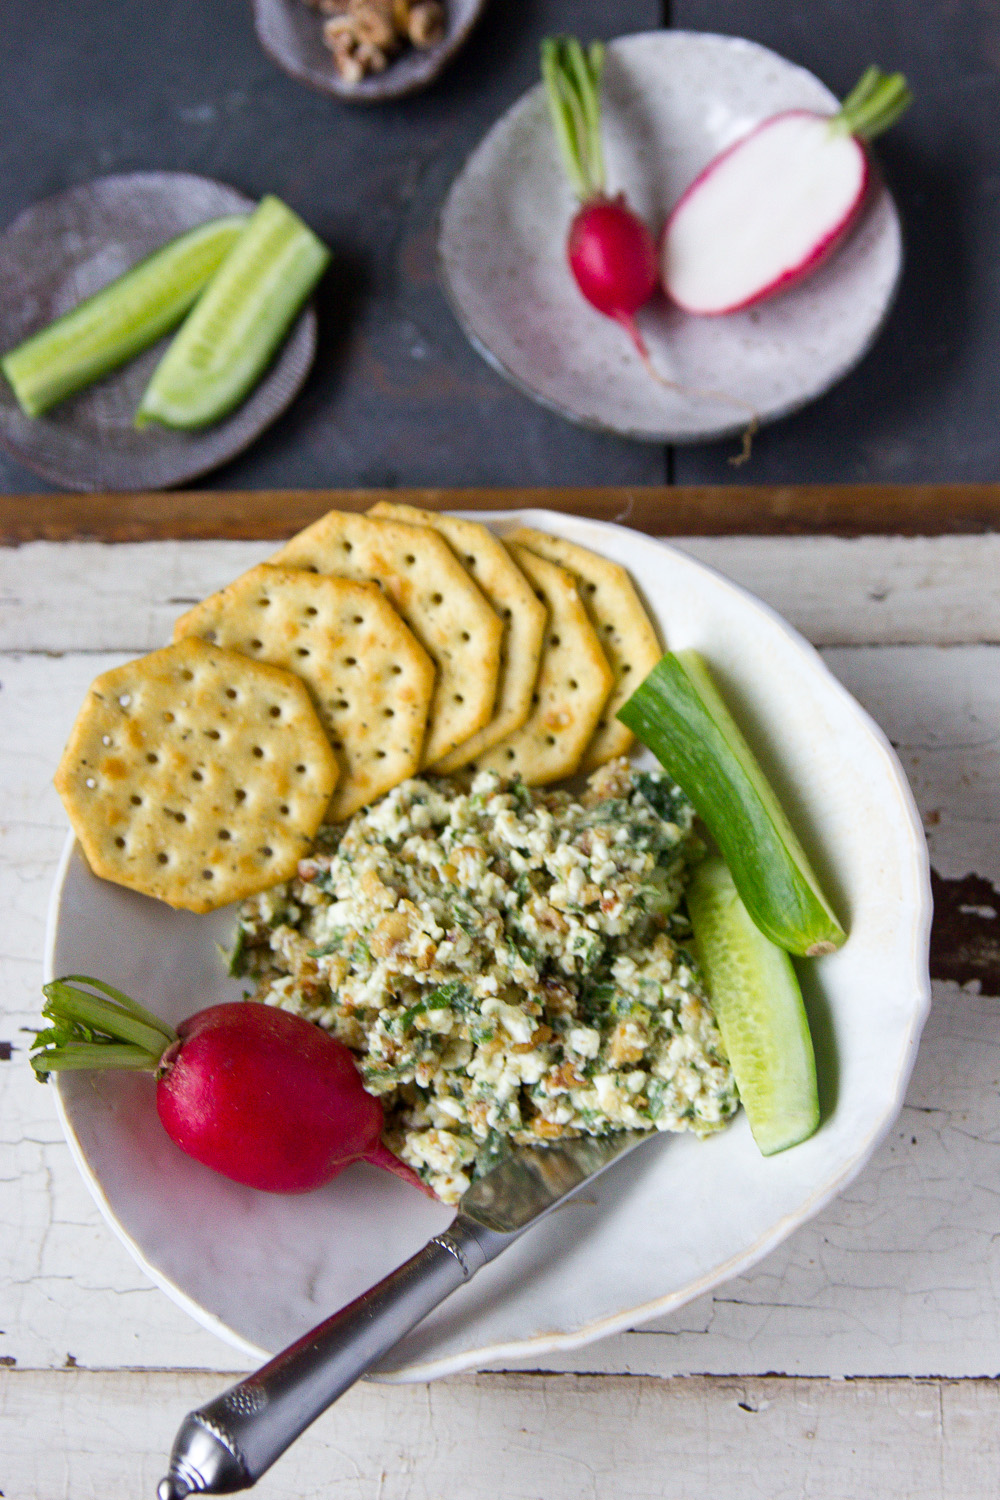 FETA HERB DIP WITH WALNUTS